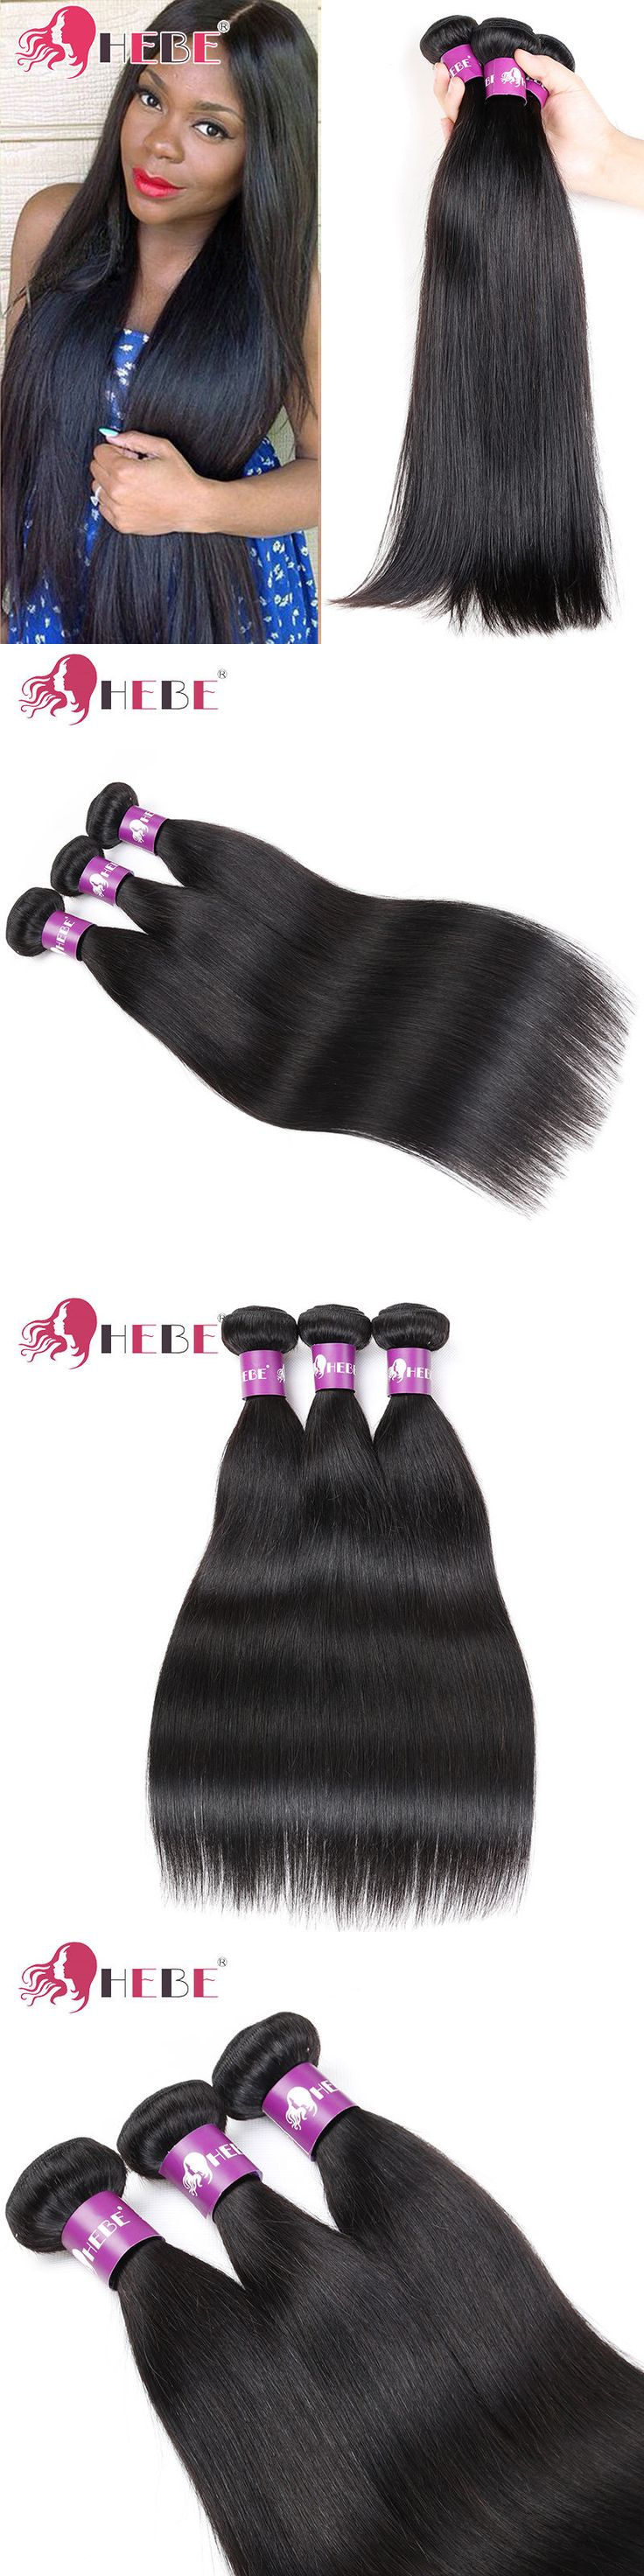 Hair Extensions: Brazilian Straight Human Hair Weave 3 Bundles 300G Straight Hair Extensions Weft -> BUY IT NOW ONLY: $90.25 on eBay!